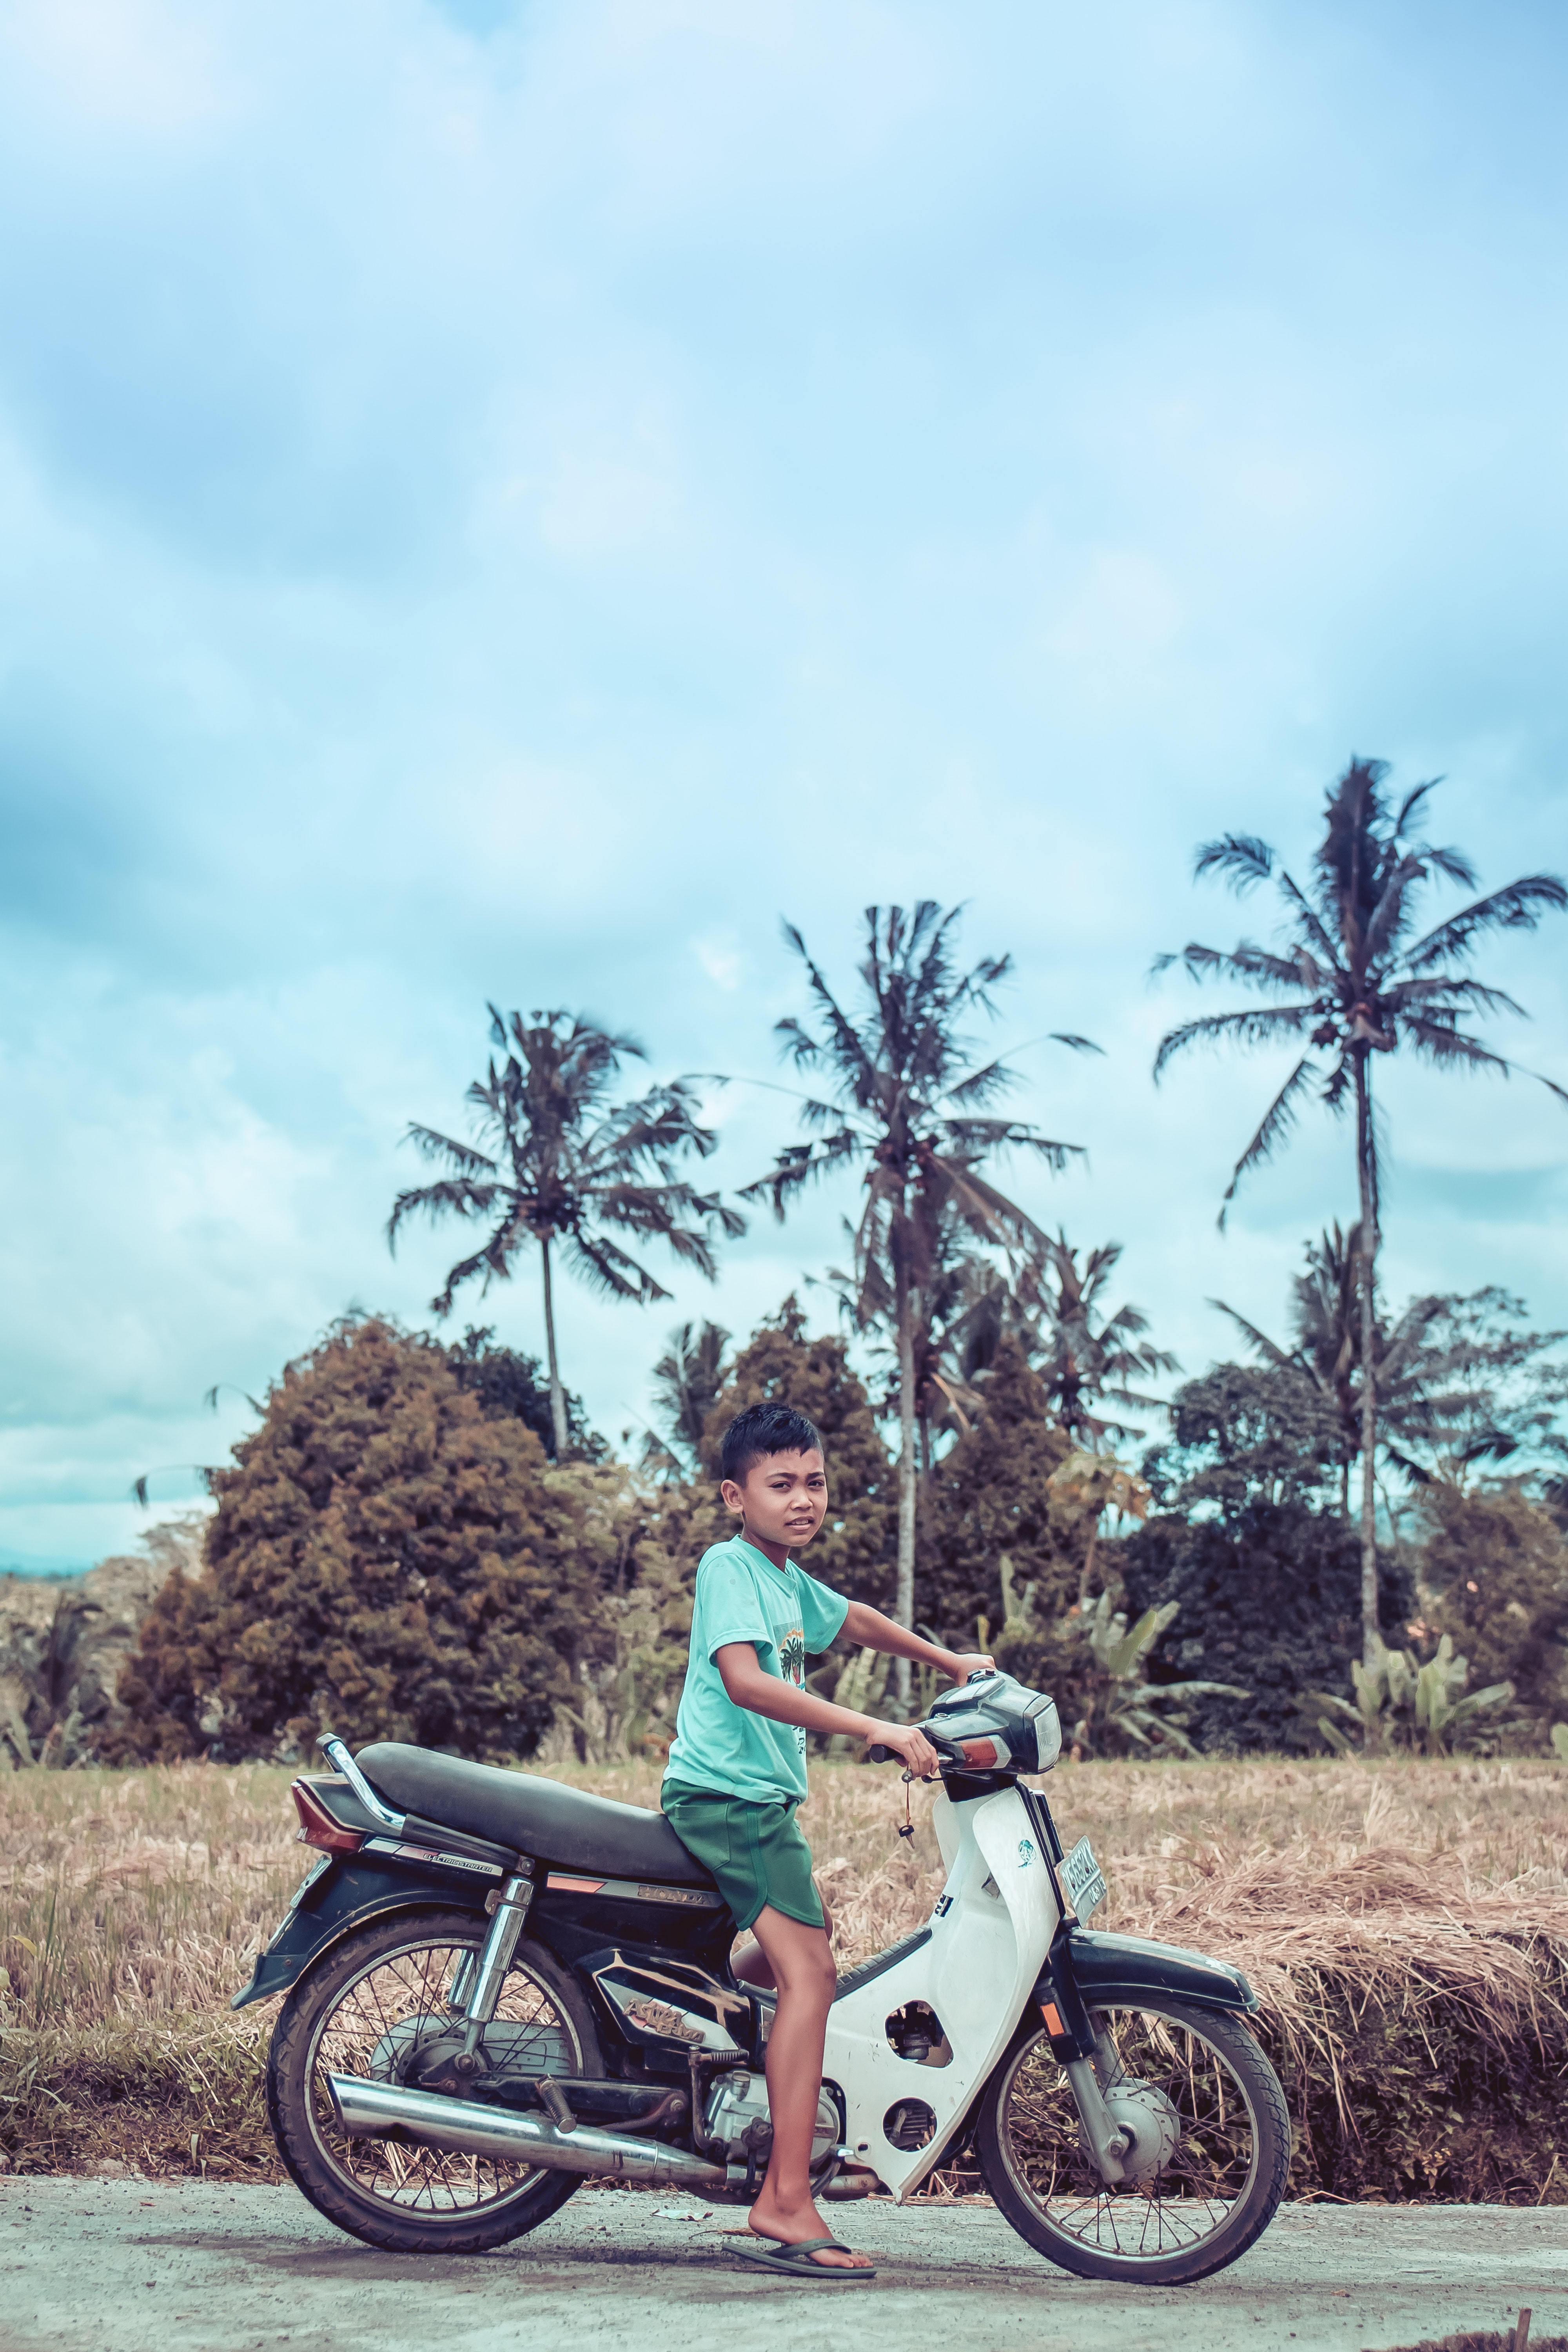 Boy Riding on White and Red Underbone Motorcycle, Asia, Summer, Ride, Road, HQ Photo